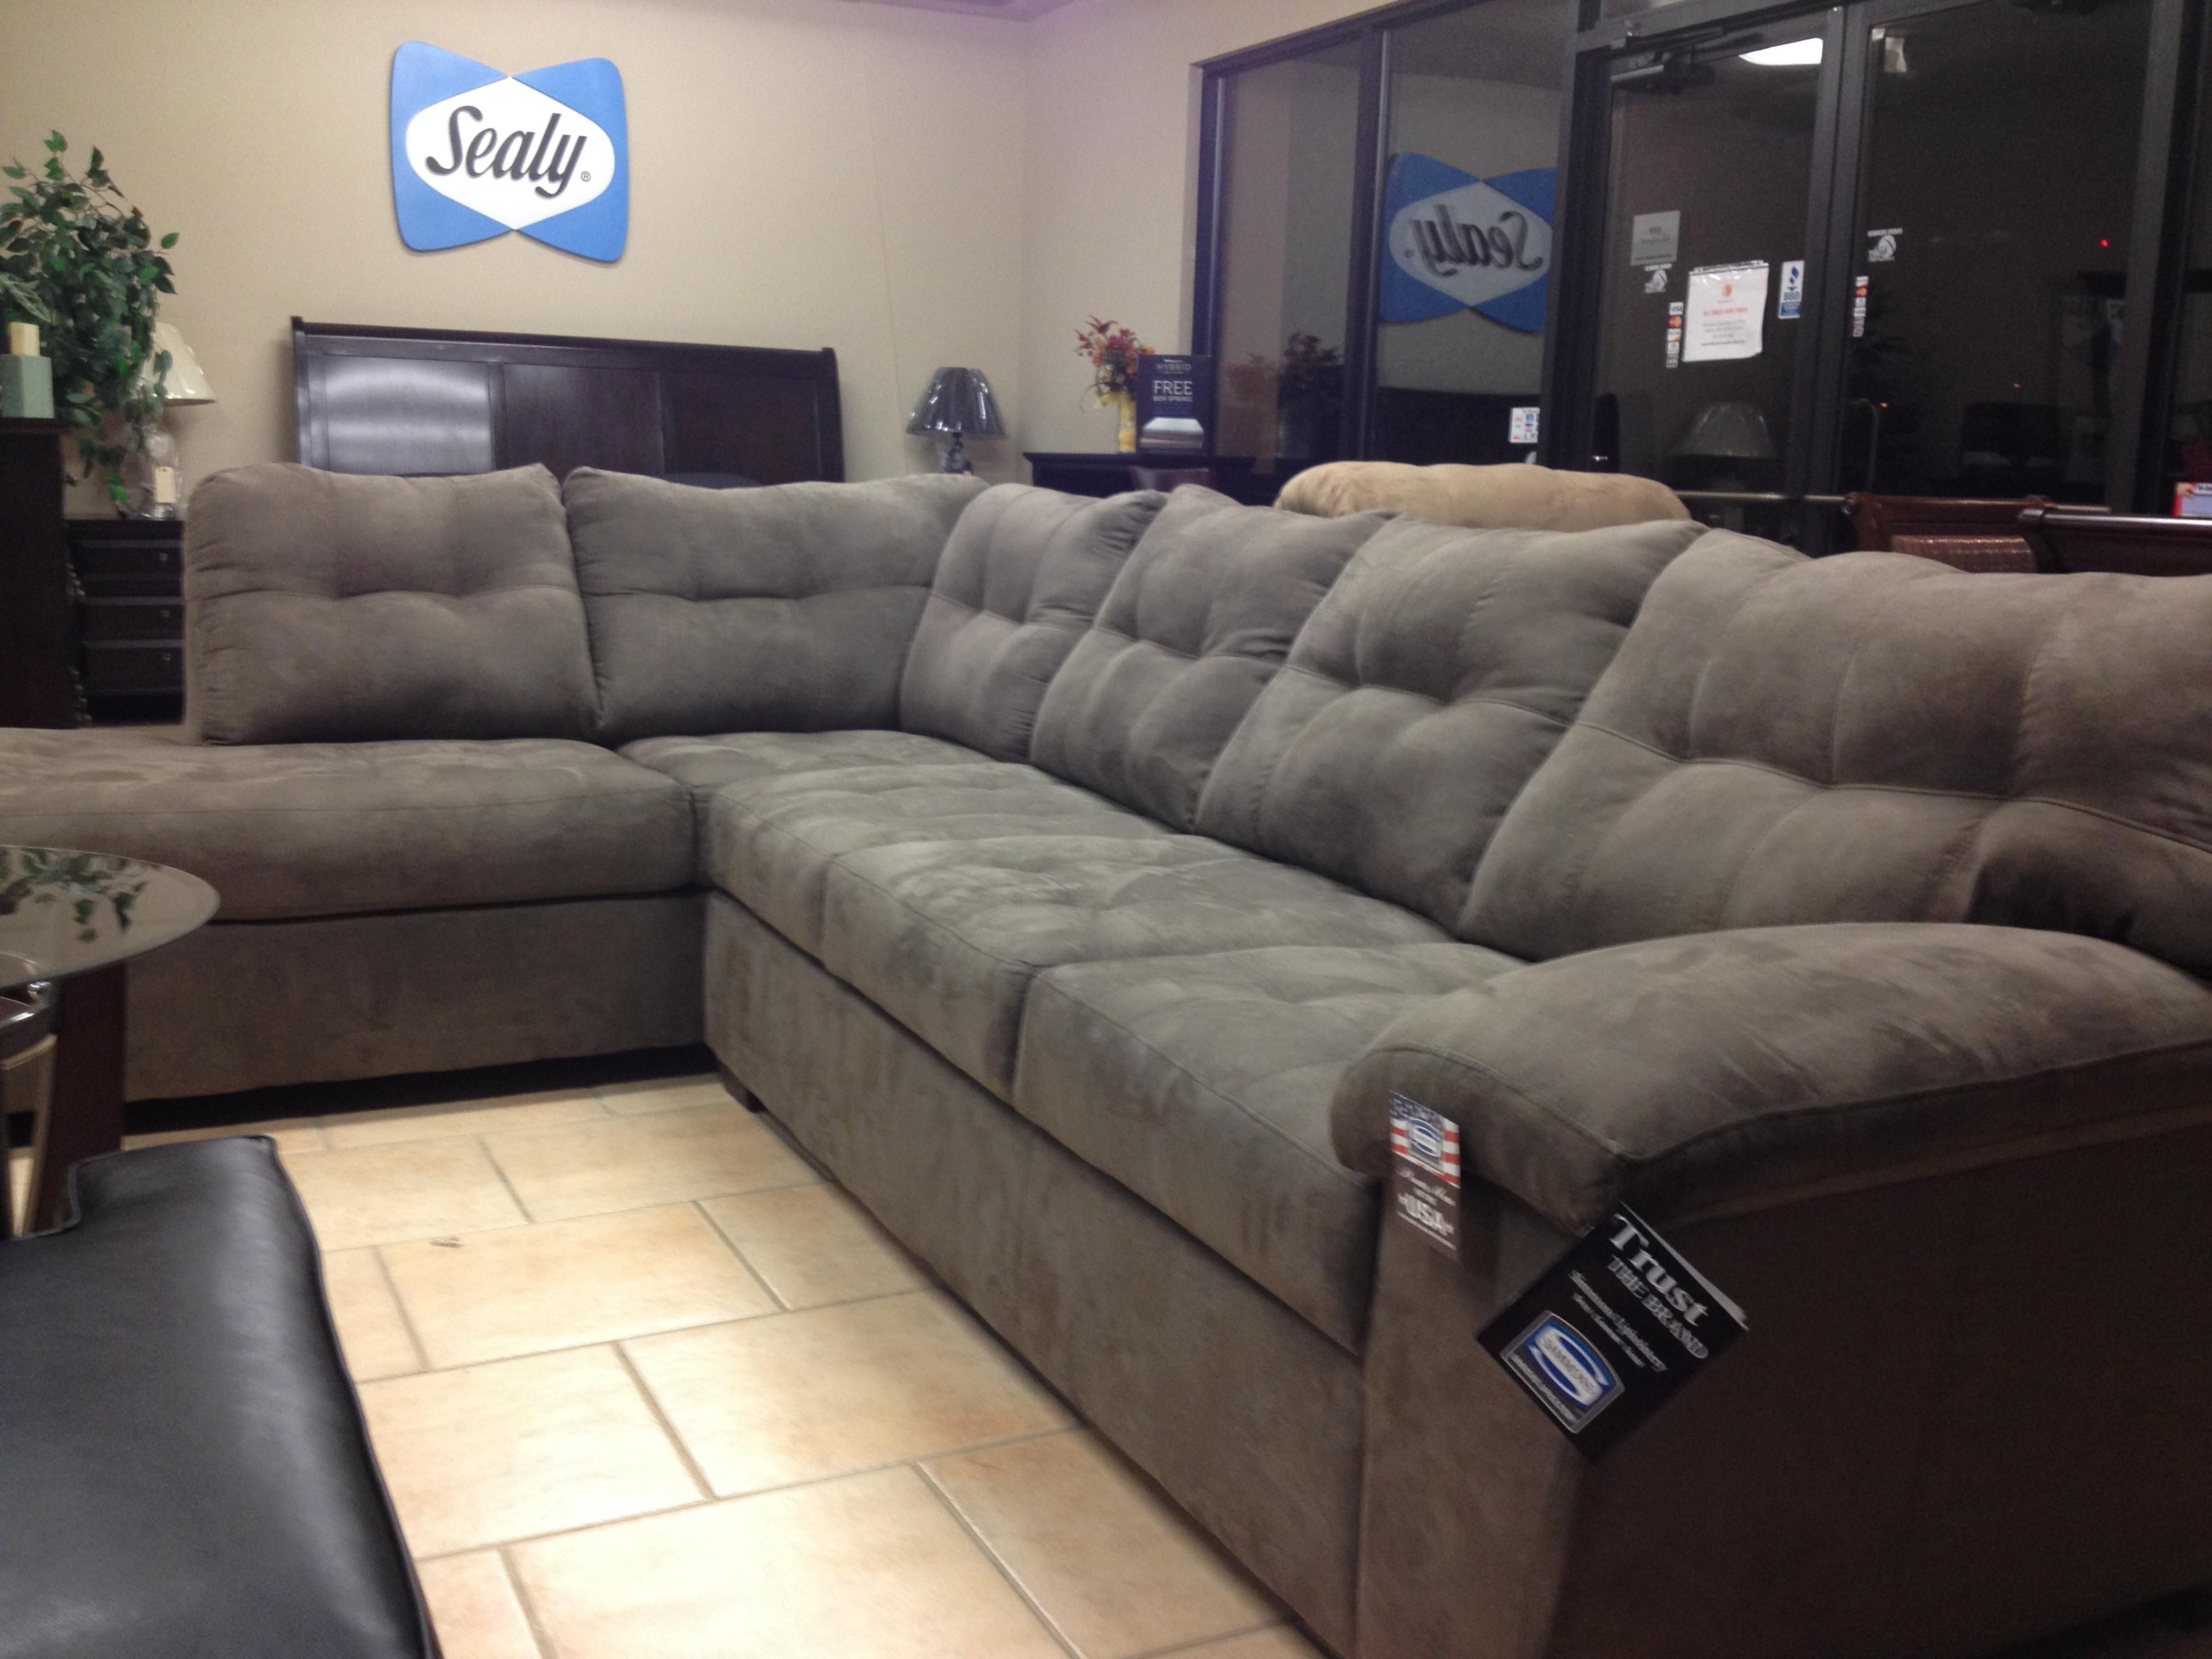 Uncategorized – Chico Furniture Direct 4 U pertaining to Simmons Microfiber Sofas